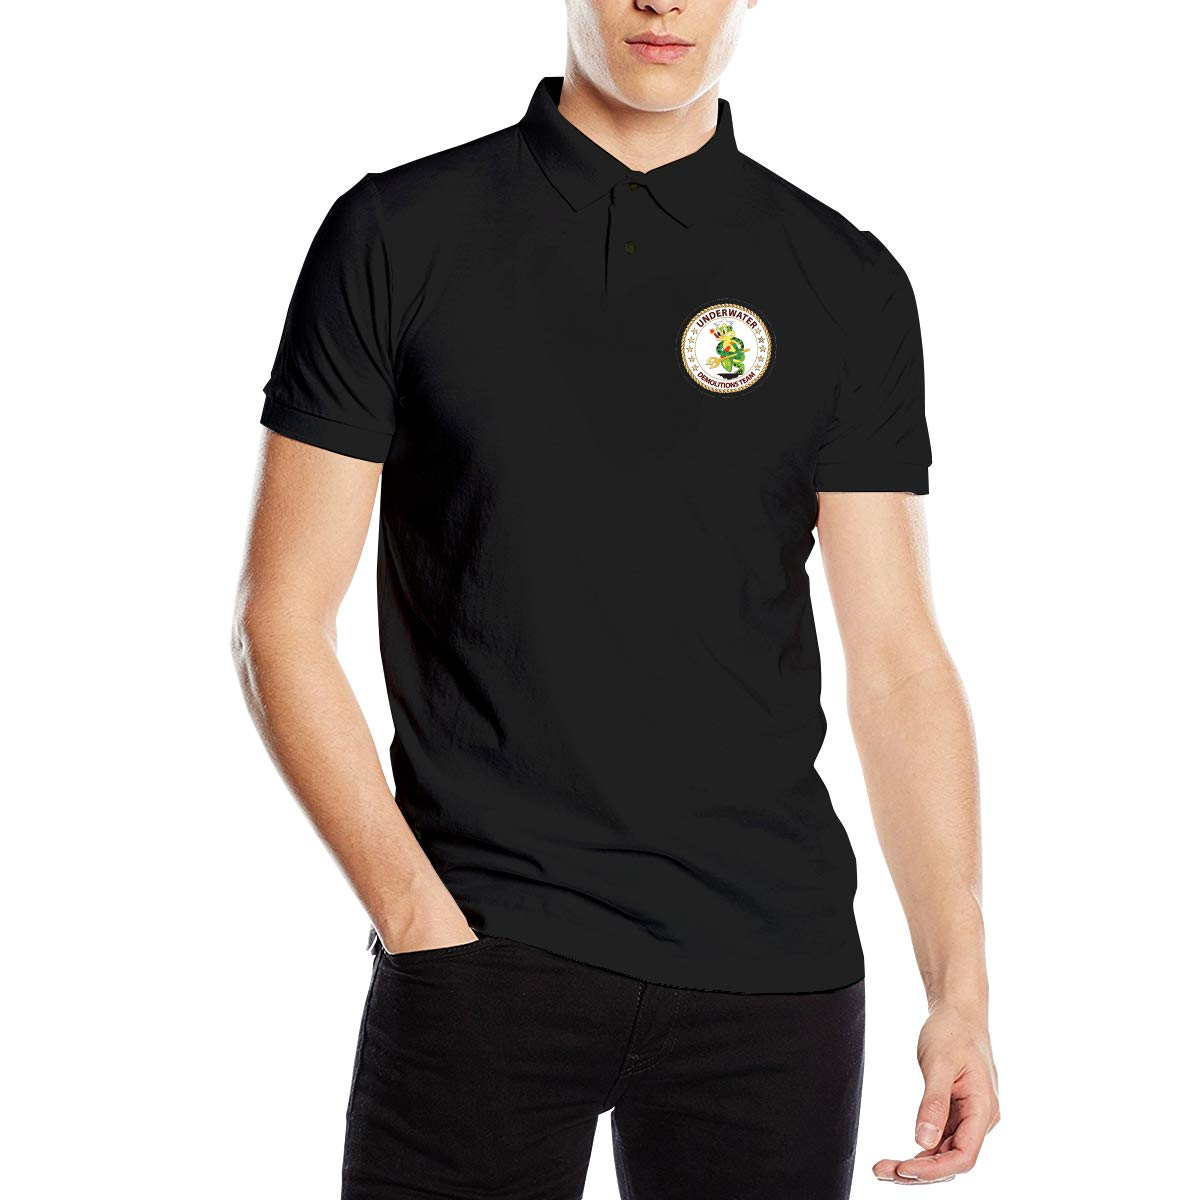 You Know And Good Navy Underwater Demolitions Team Mens Regular-Fit Cotton Polo Shirt Short Sleeve